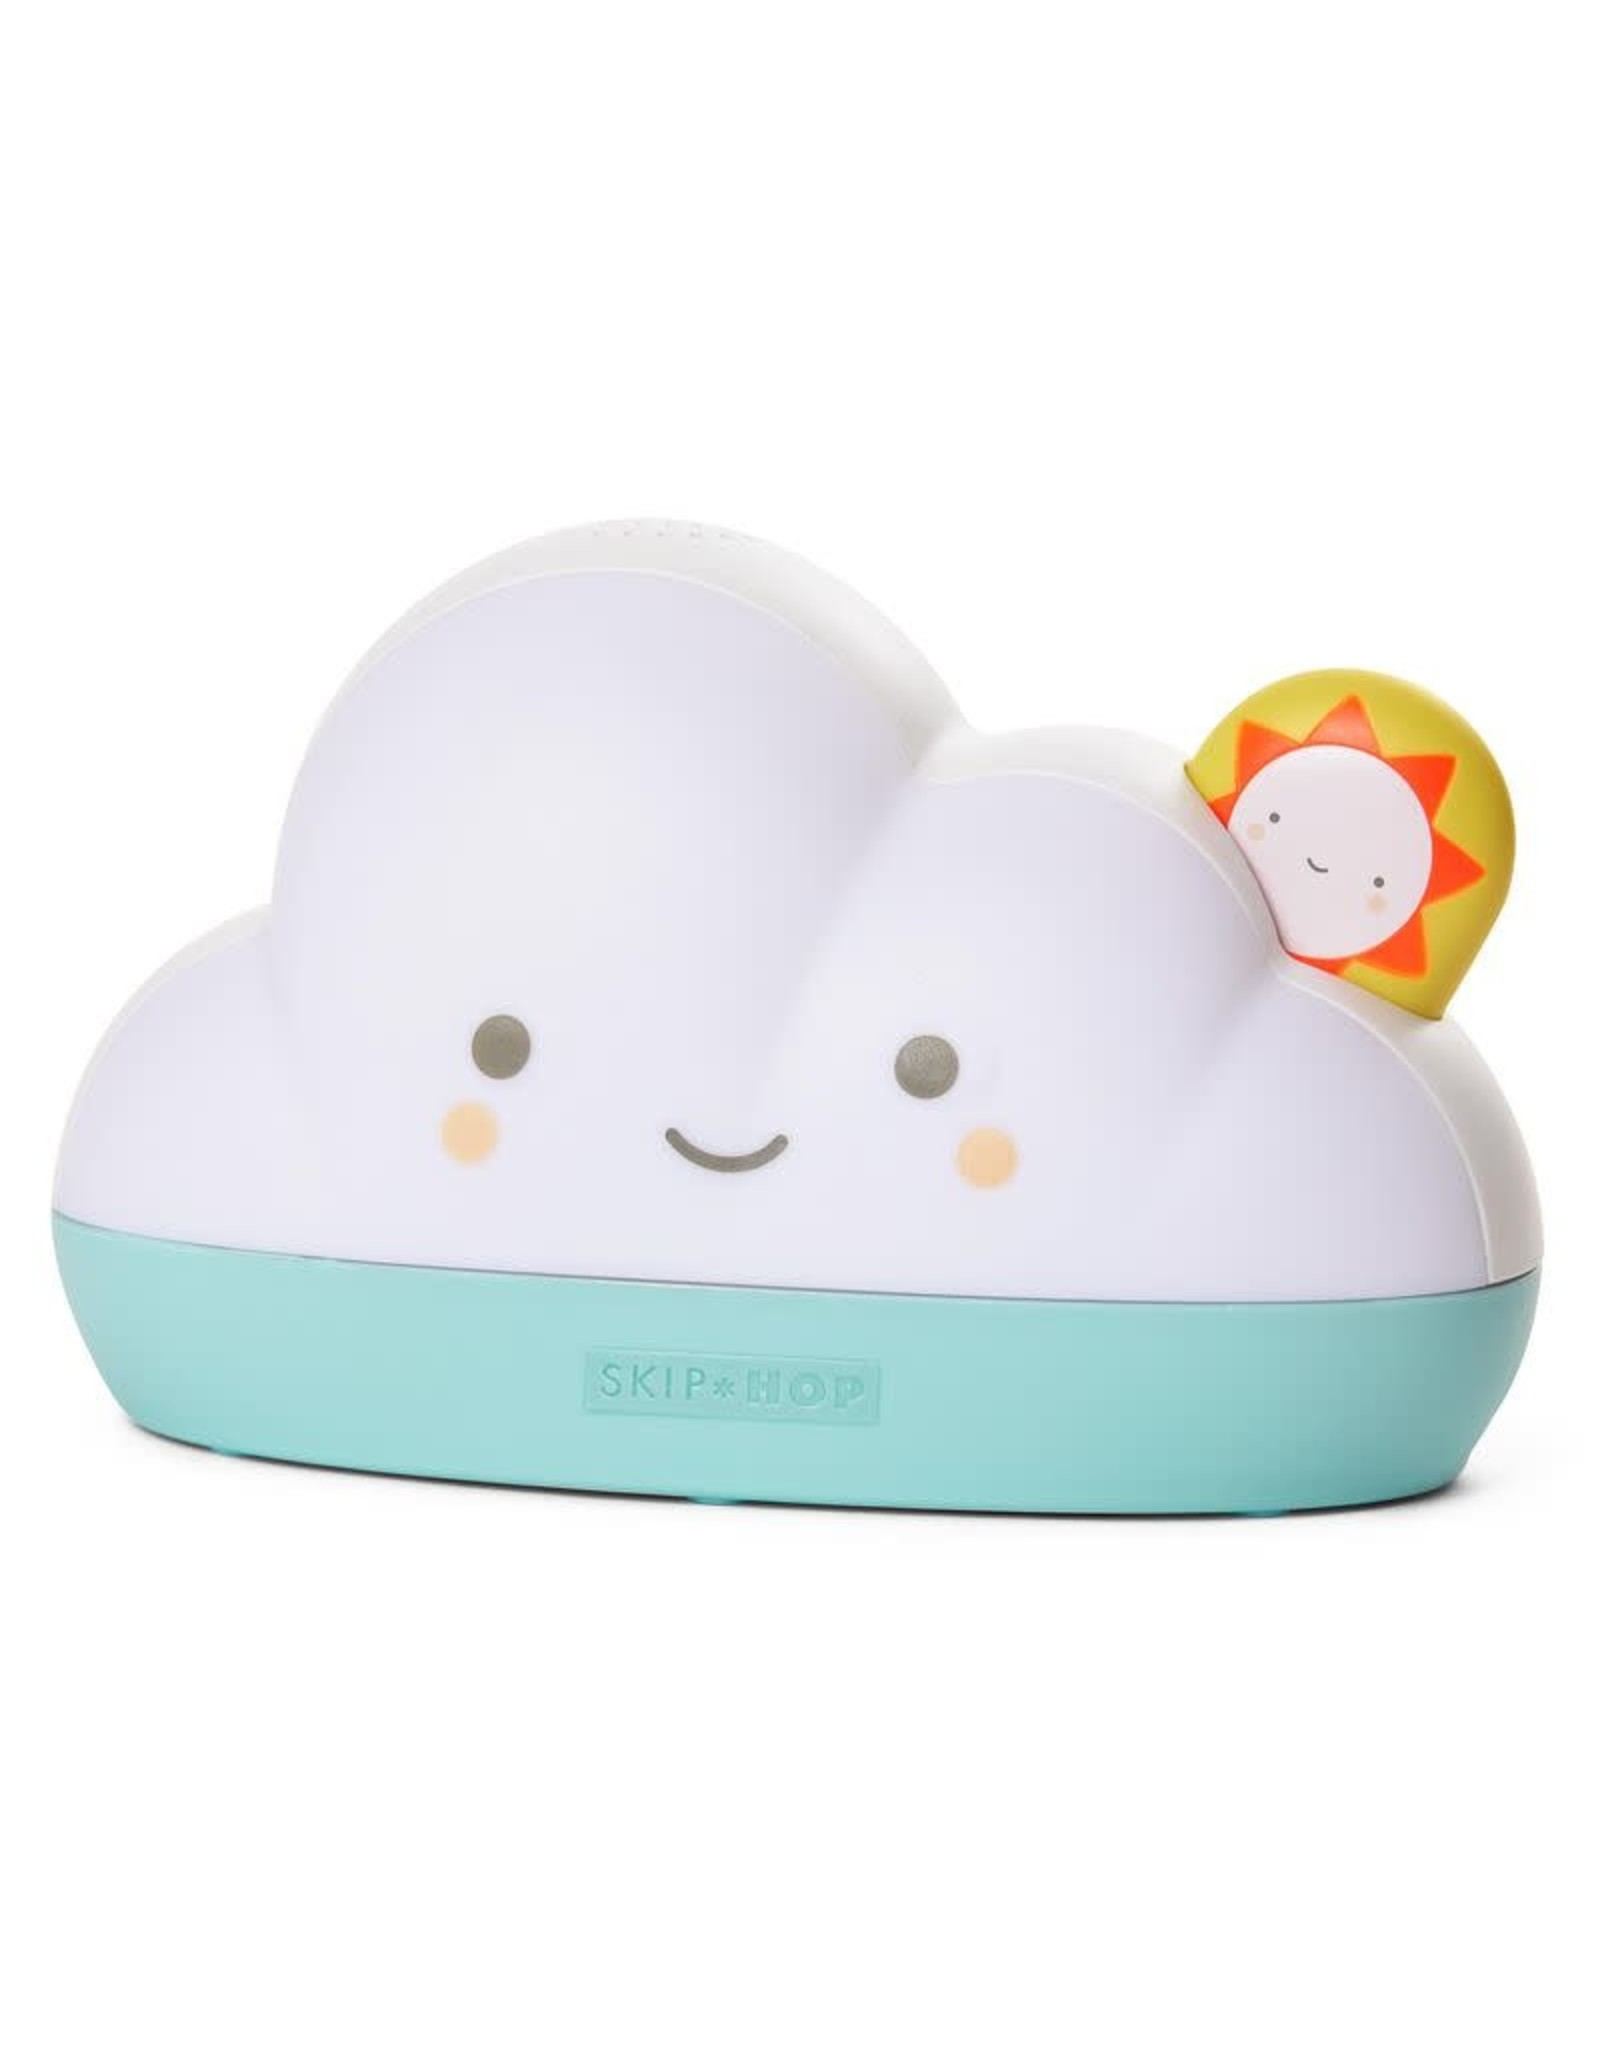 Skip Hop Dream & Shine Sleep Trainer Nightlight, Cloud